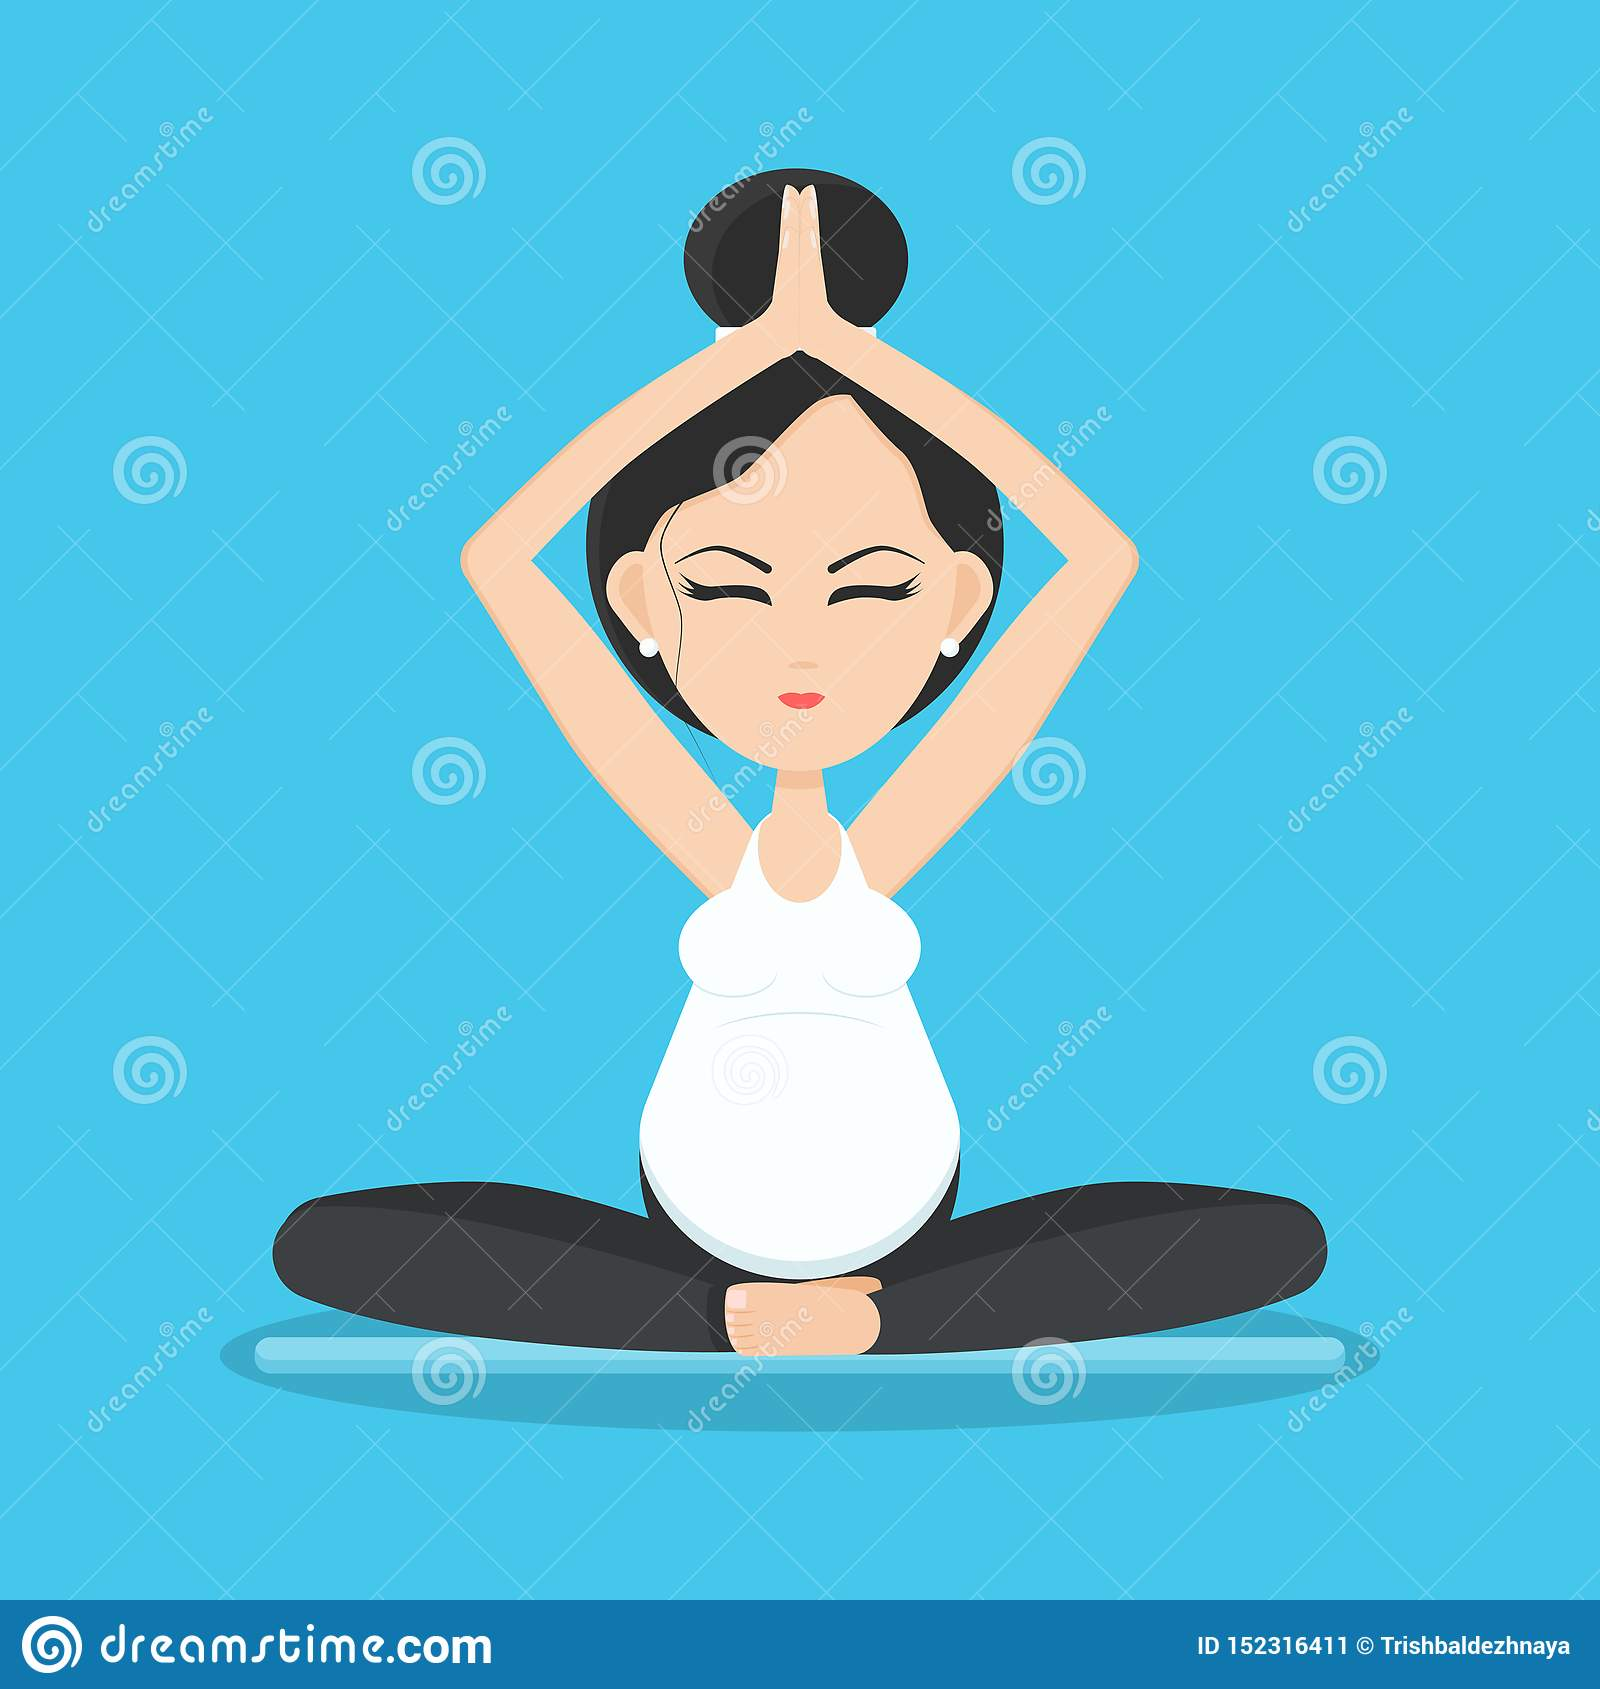 Isolated smiling pregnant woman meditating and relaxing in yoga pose on yoga mat